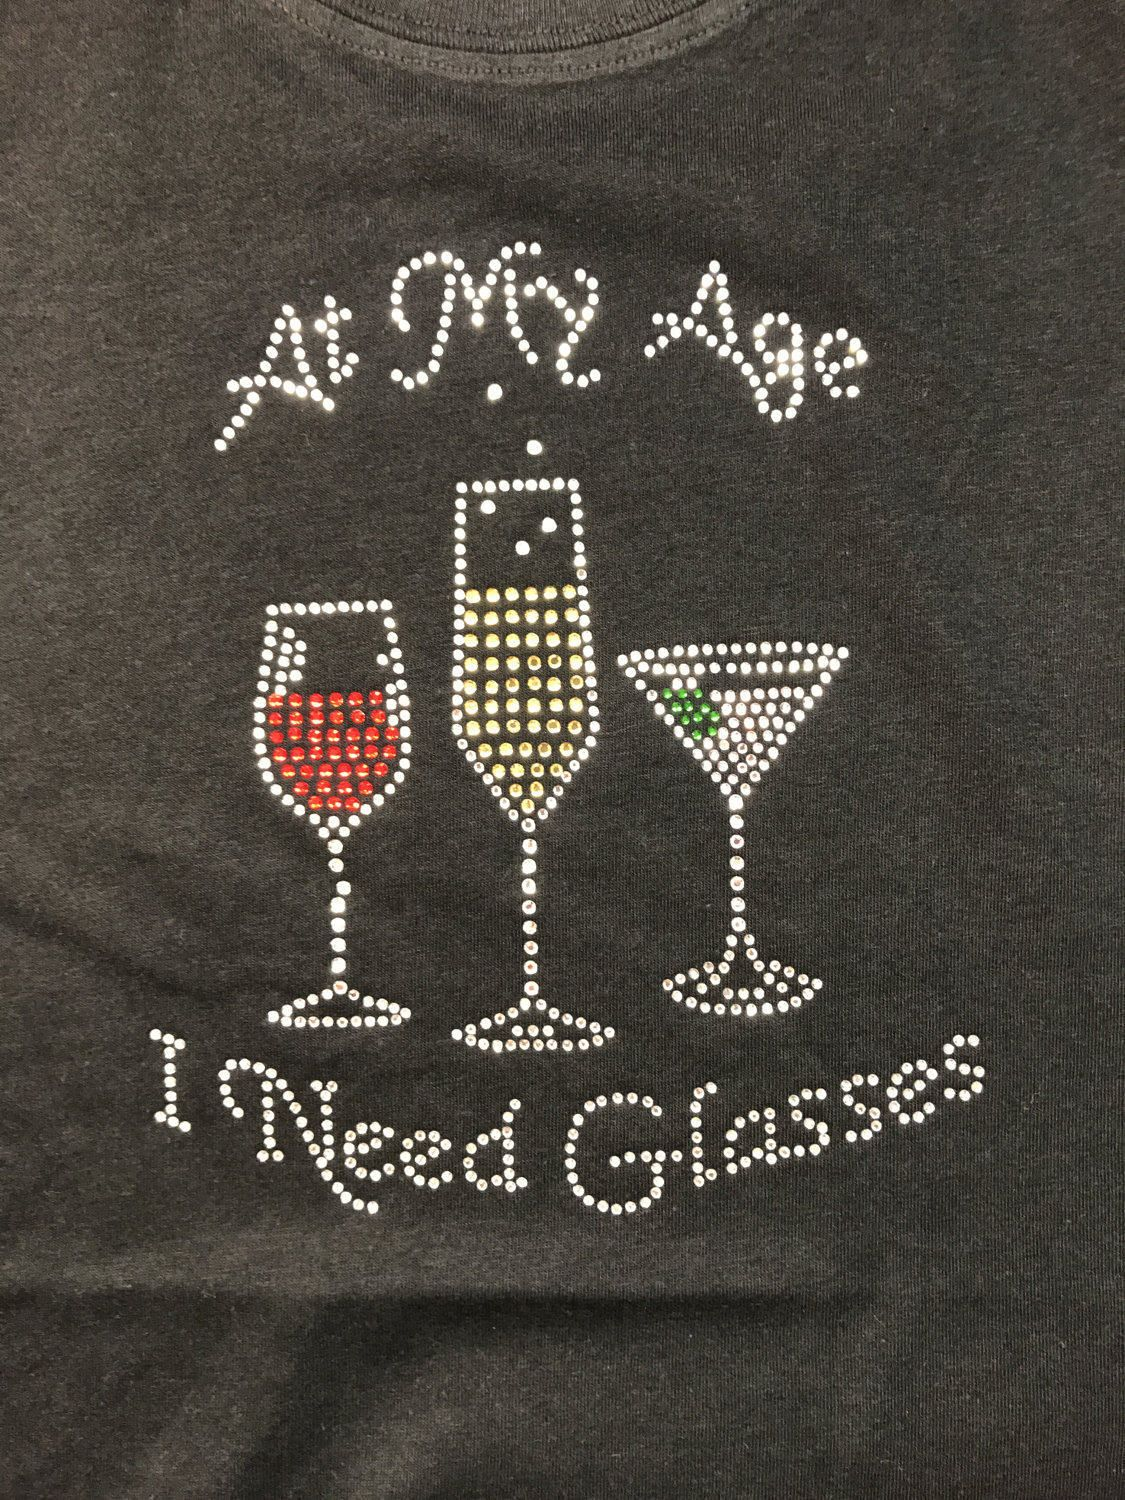 Rhinestone Shirt - At My Age I Need Glasses Rhinestone Shirt, Wine ...